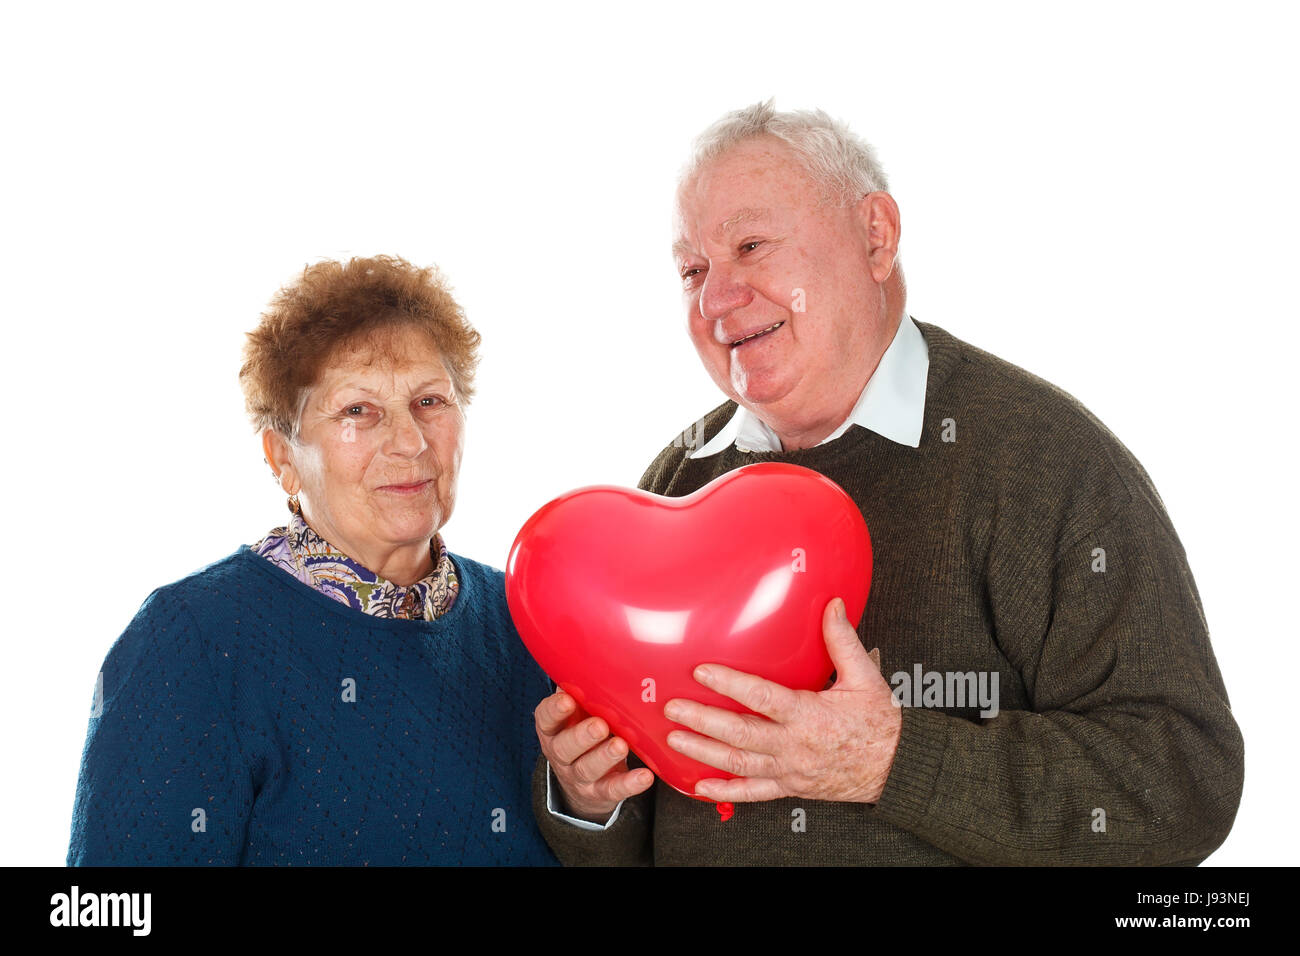 Picture of an elderly couple celebrating valentine's day - isolated background - Stock Image